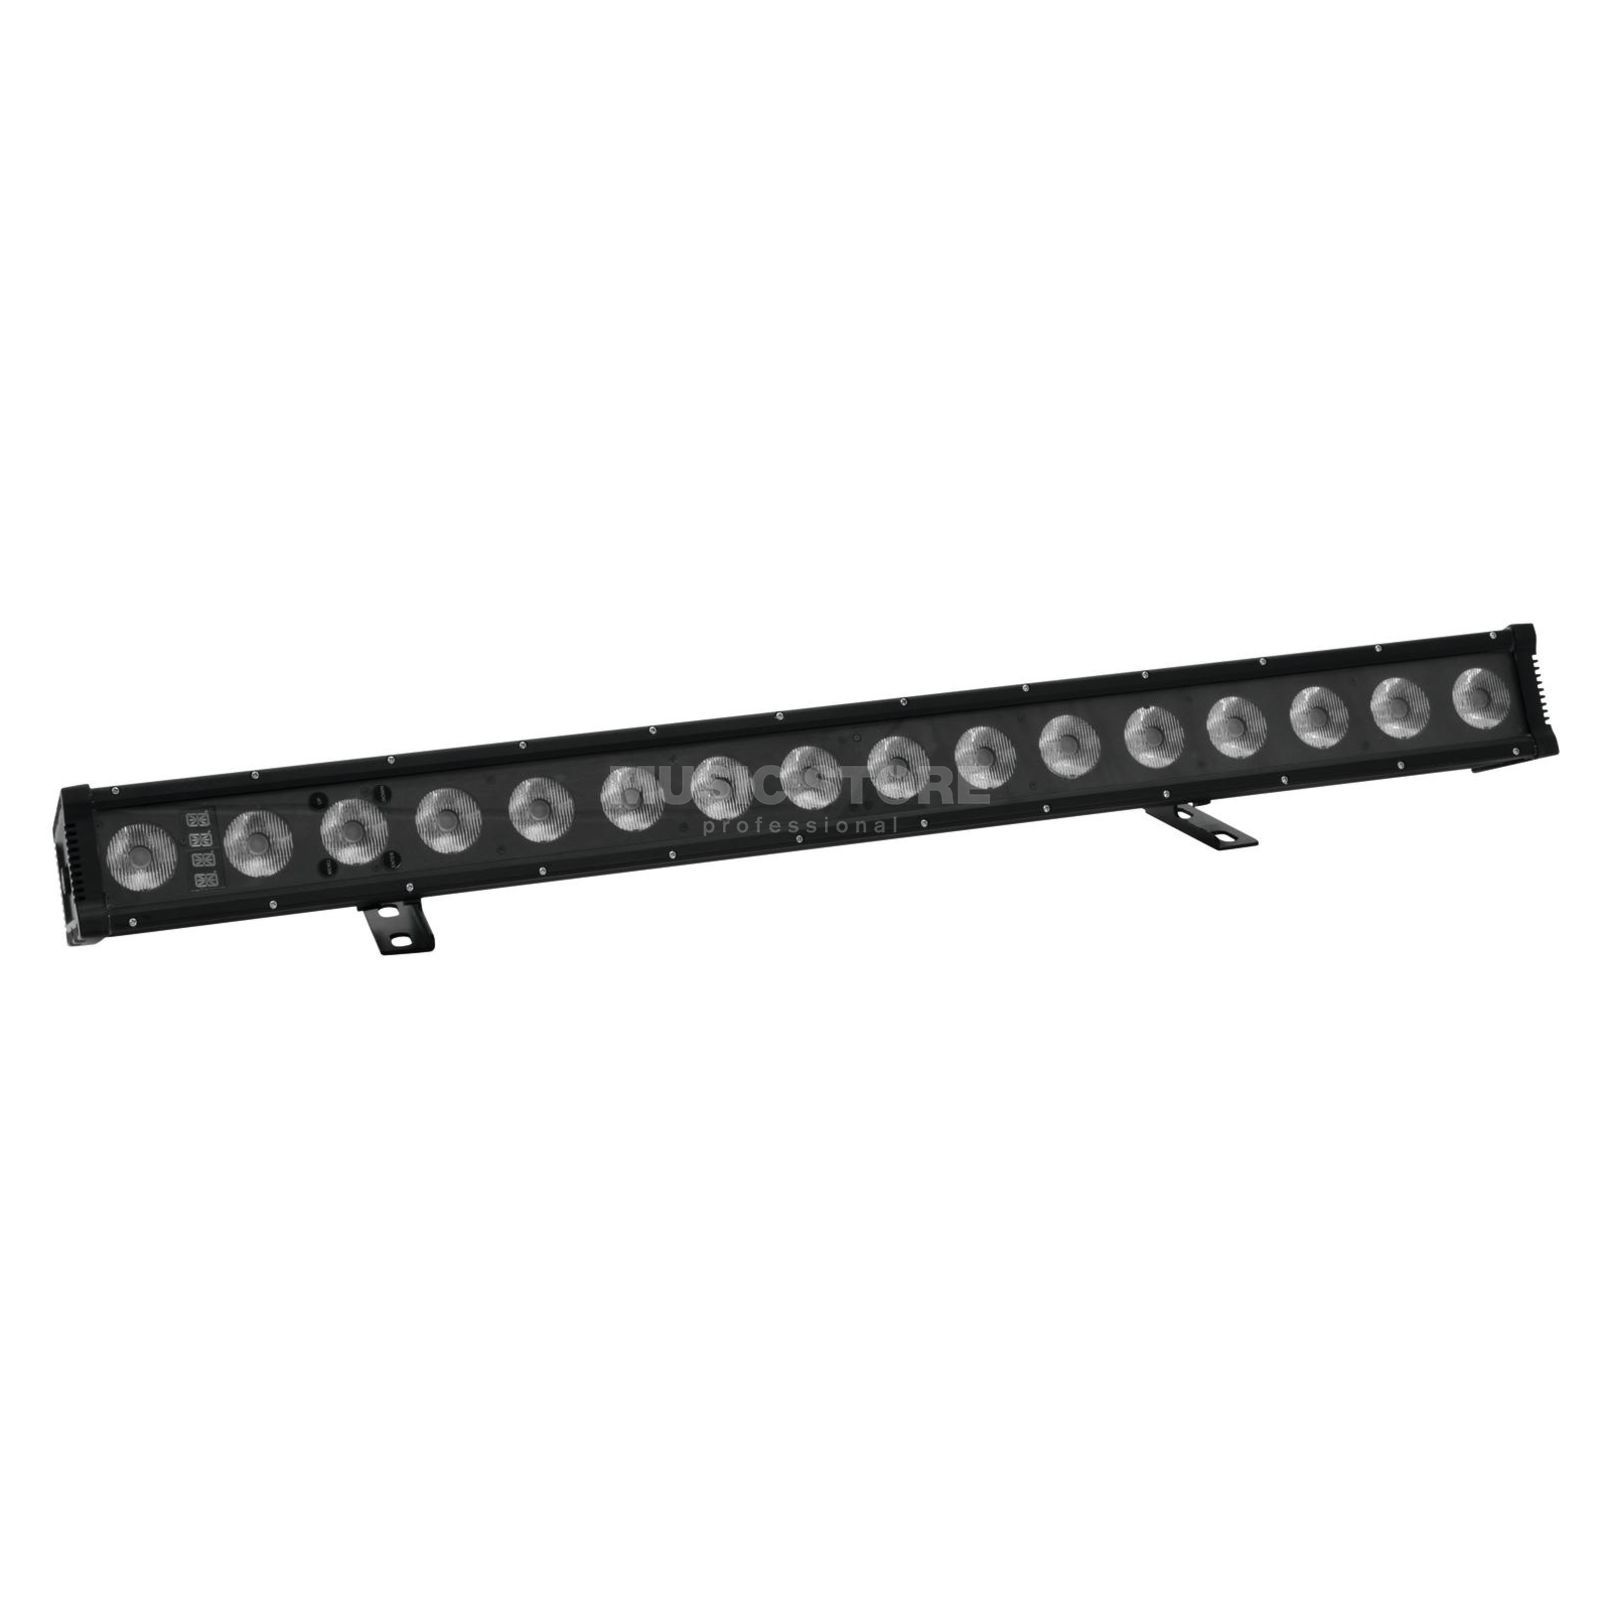 Eurolite LED IP T2000 WW Leiste IP65 mit 5-W-LEDs / 3200K Produktbild